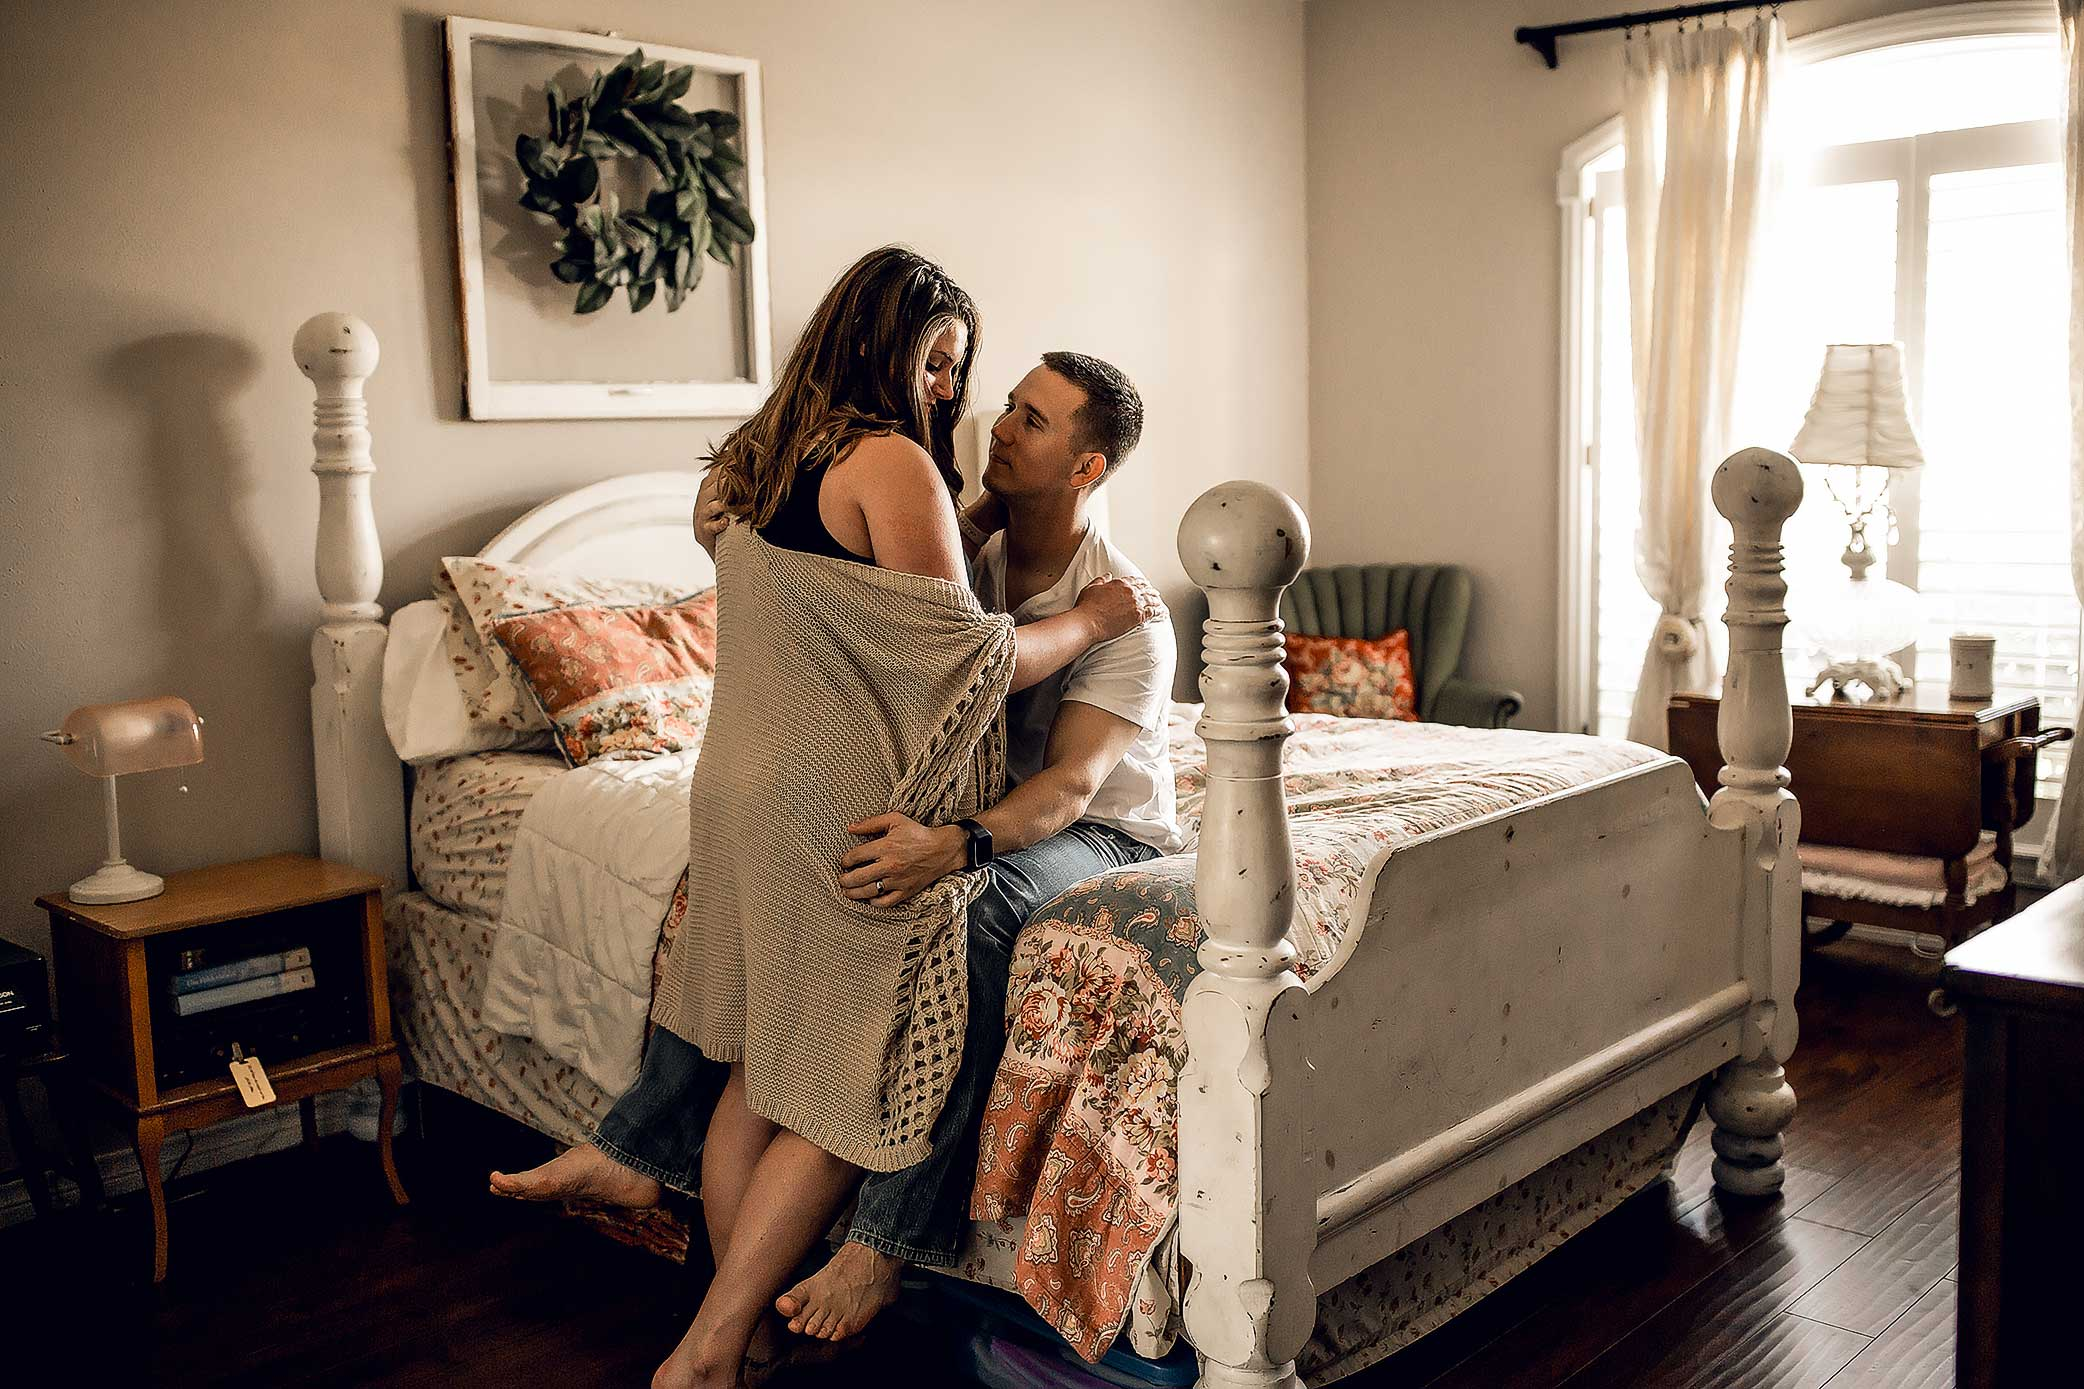 shelby-schiller-photography-intimate-lifestyle-couples-in-home-session-in-bedroom.jpg